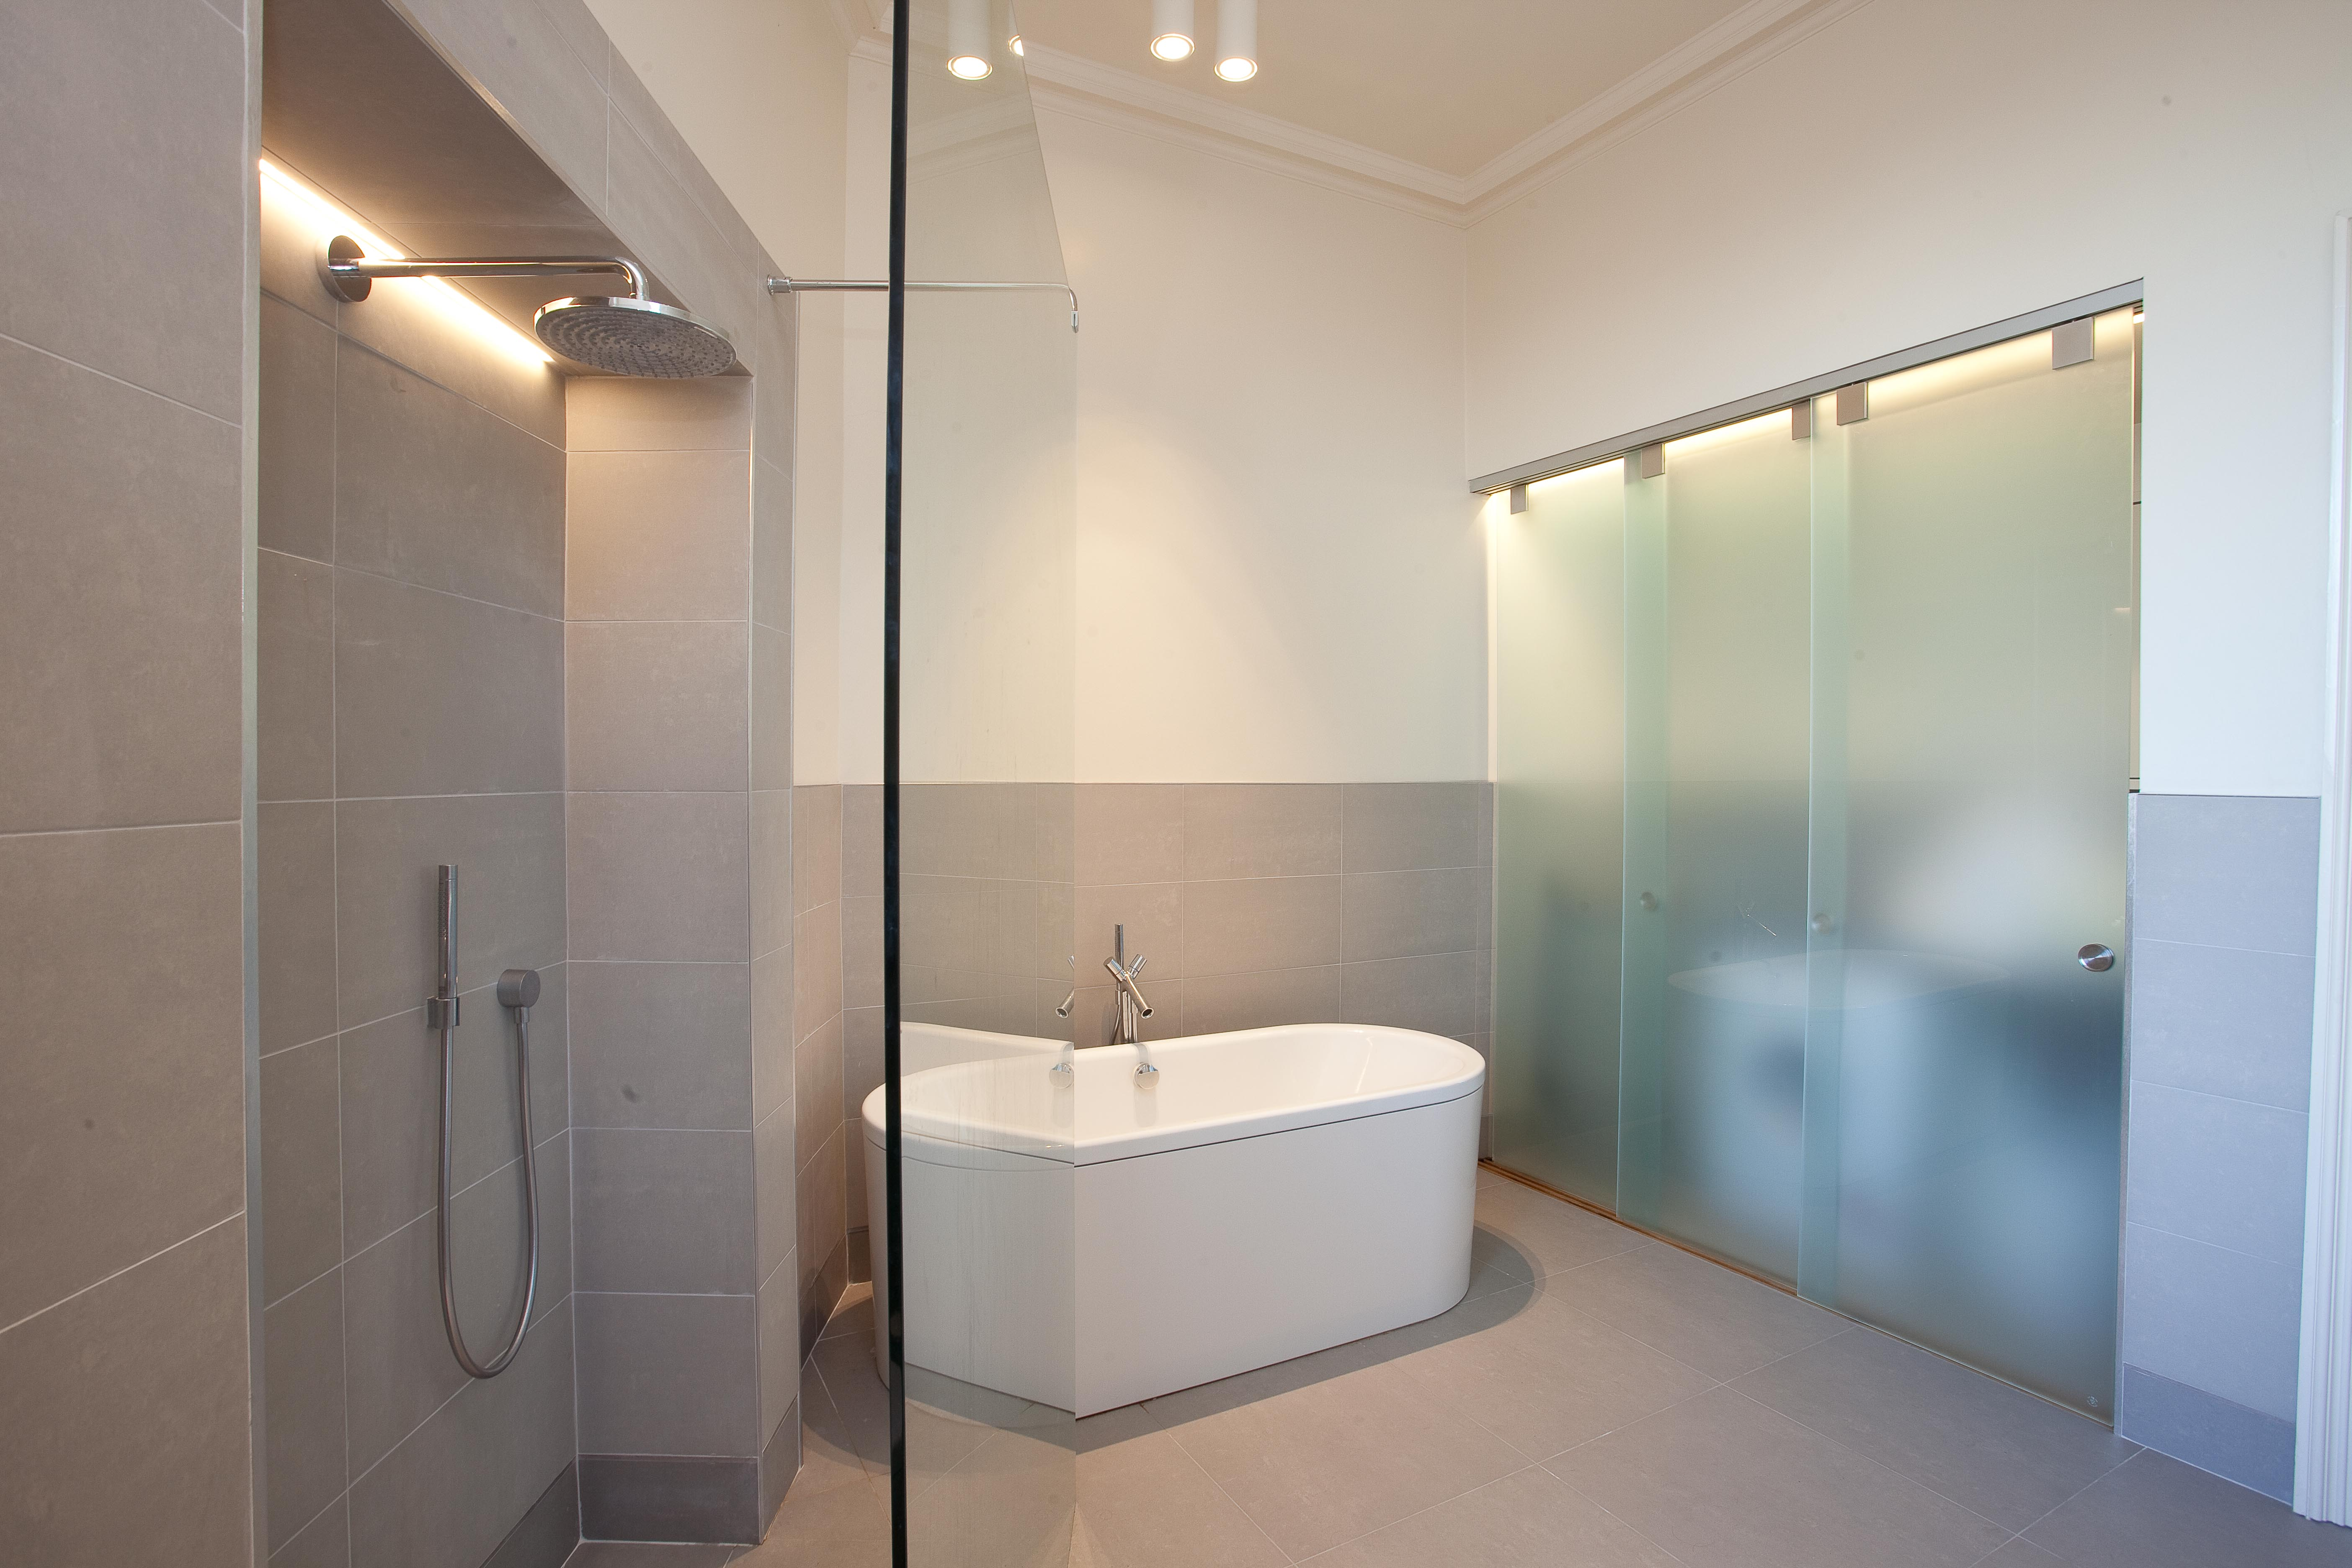 Freestanding bath with wall mounted contemporary tap.